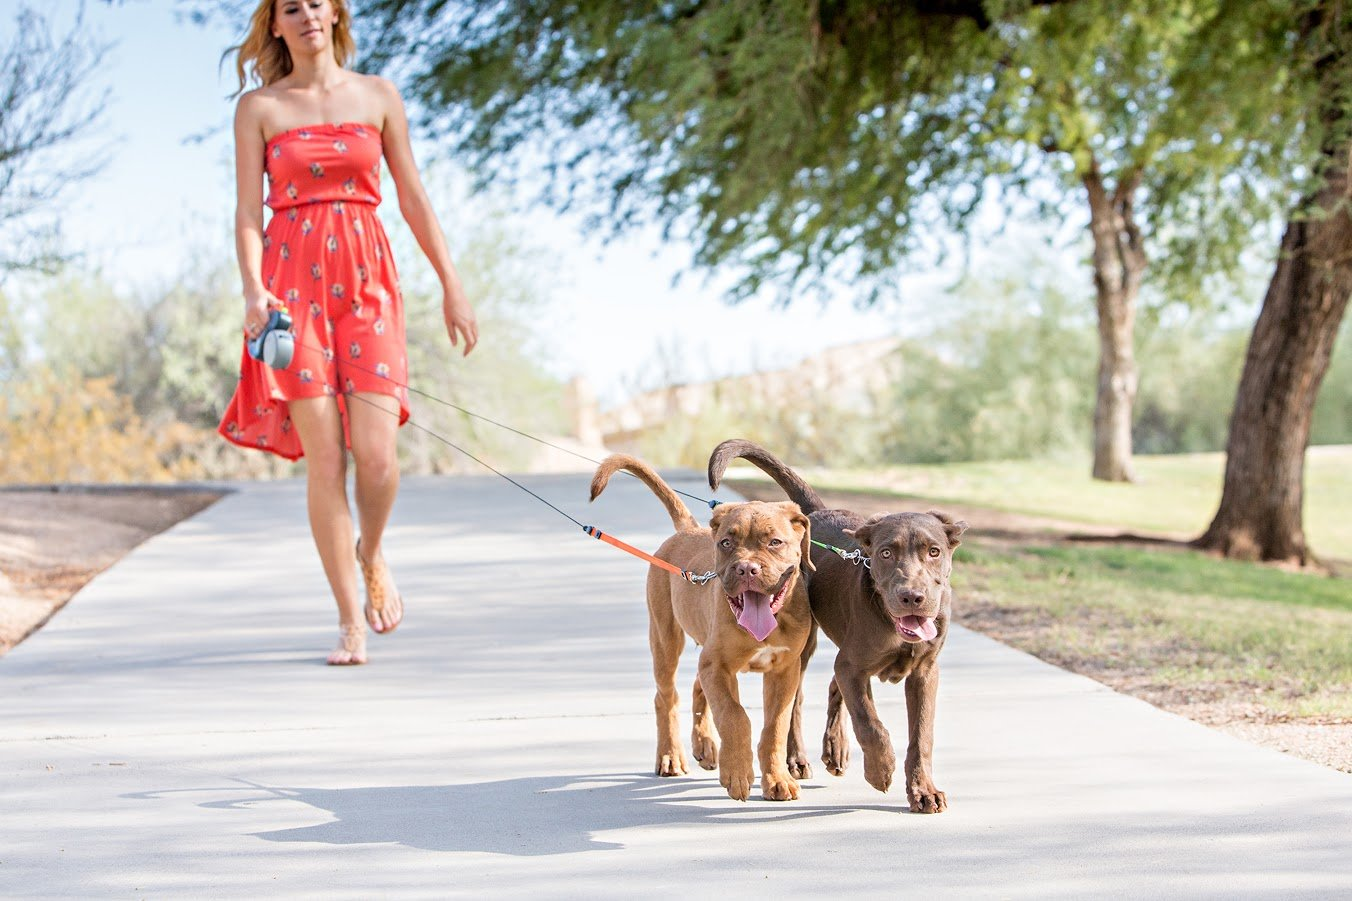 How to Walk Two Dogs at the Same Time on Leashes How to Walk Two Dogs at the Same Time on Leashes new pics